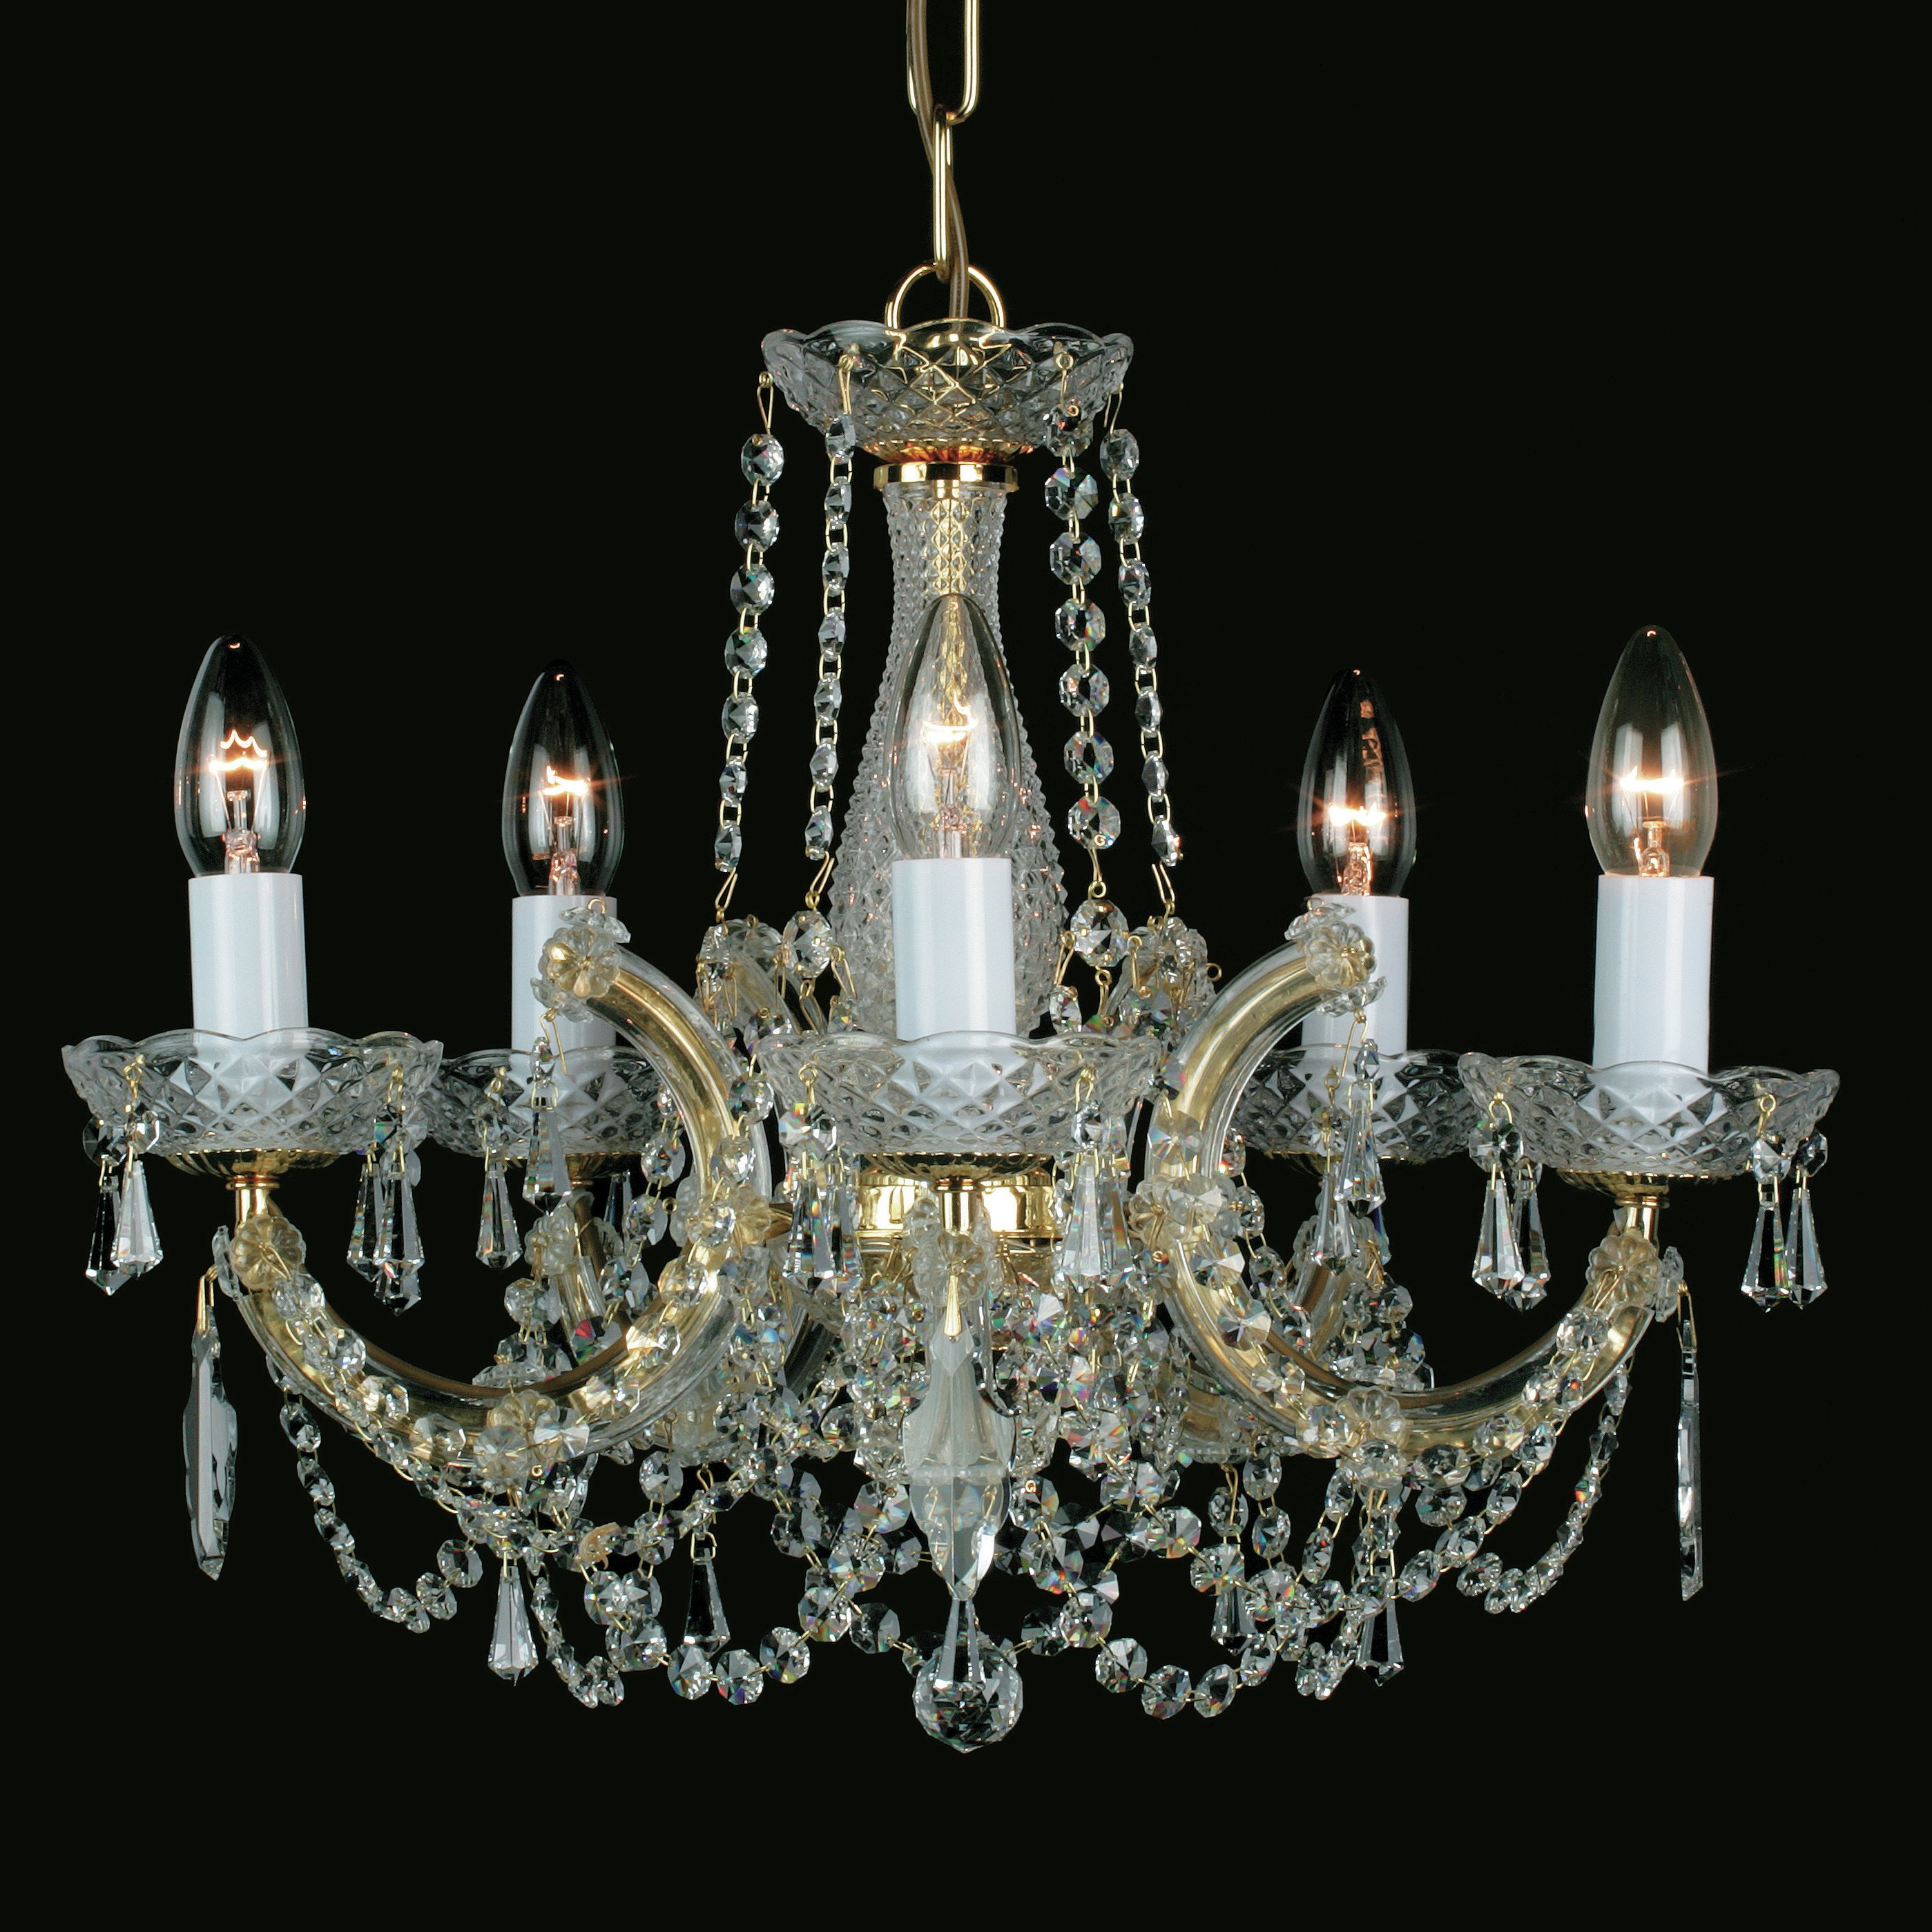 Thresa 5 Light Shaded Chandeliers In Preferred Impex Lighting Marie Theresa 5 Light Candle Style Chandelier (View 11 of 20)